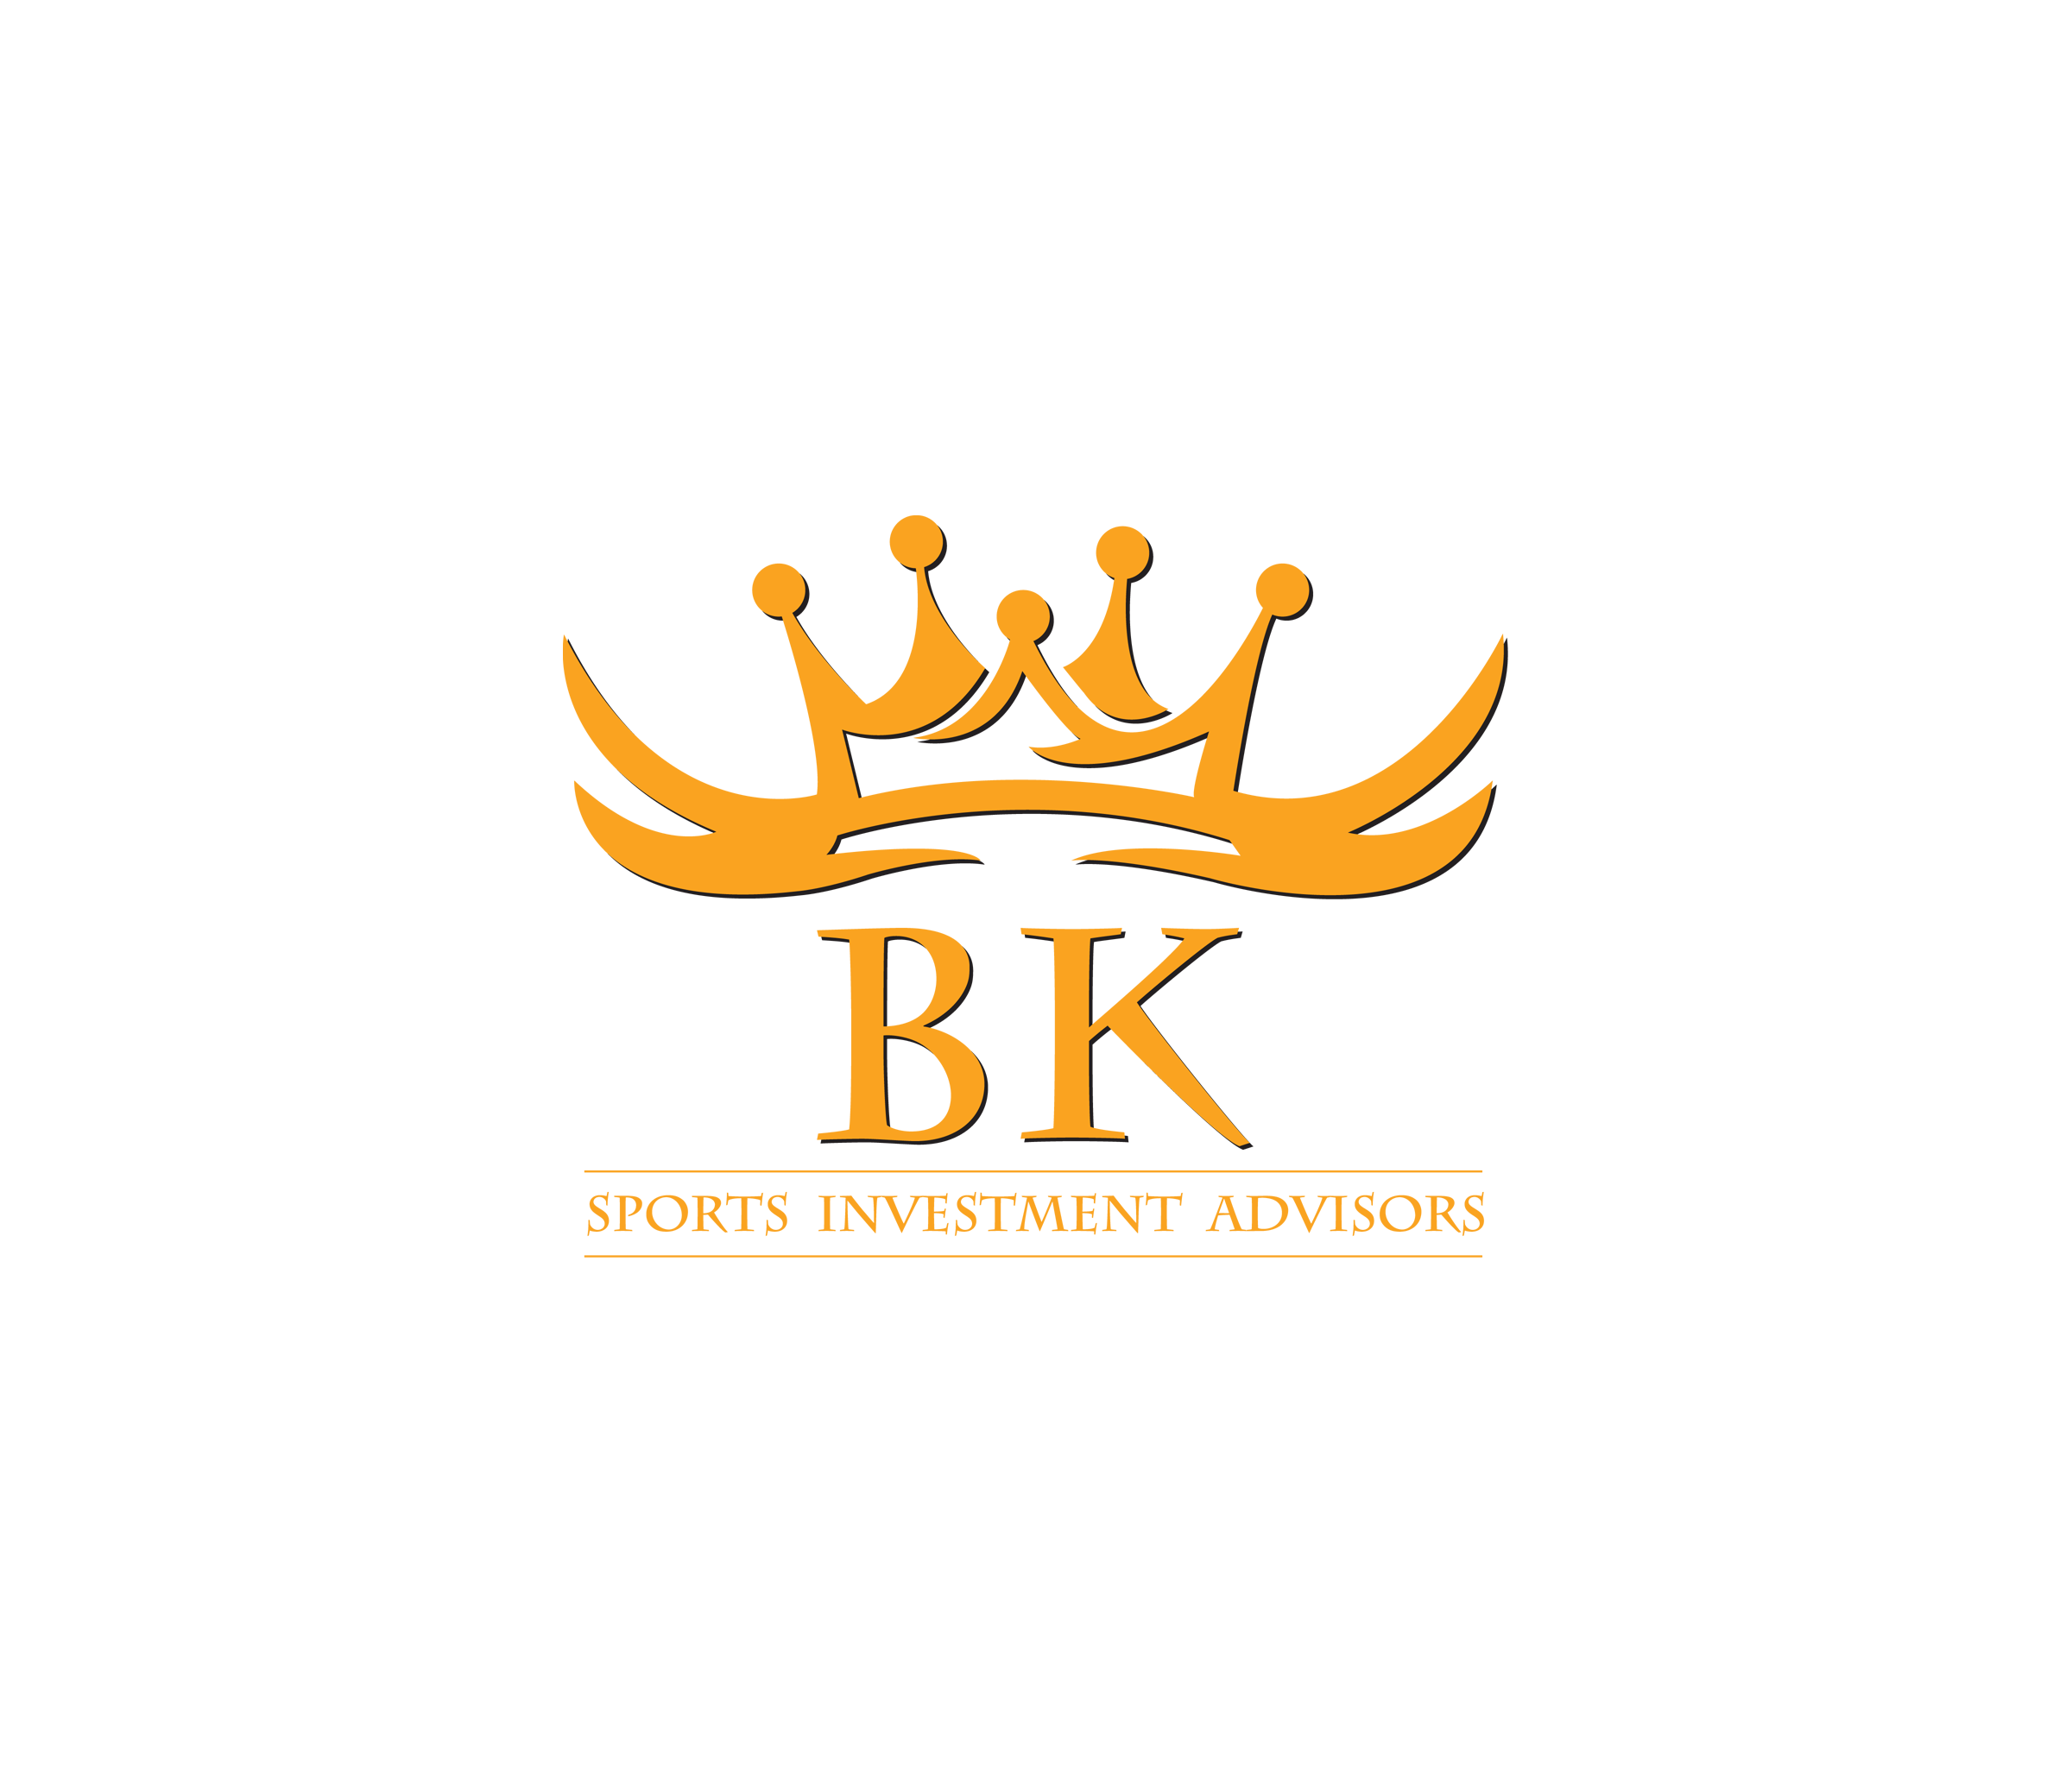 BK Announces The Addition of Scott Brown Sports Investment Consultant